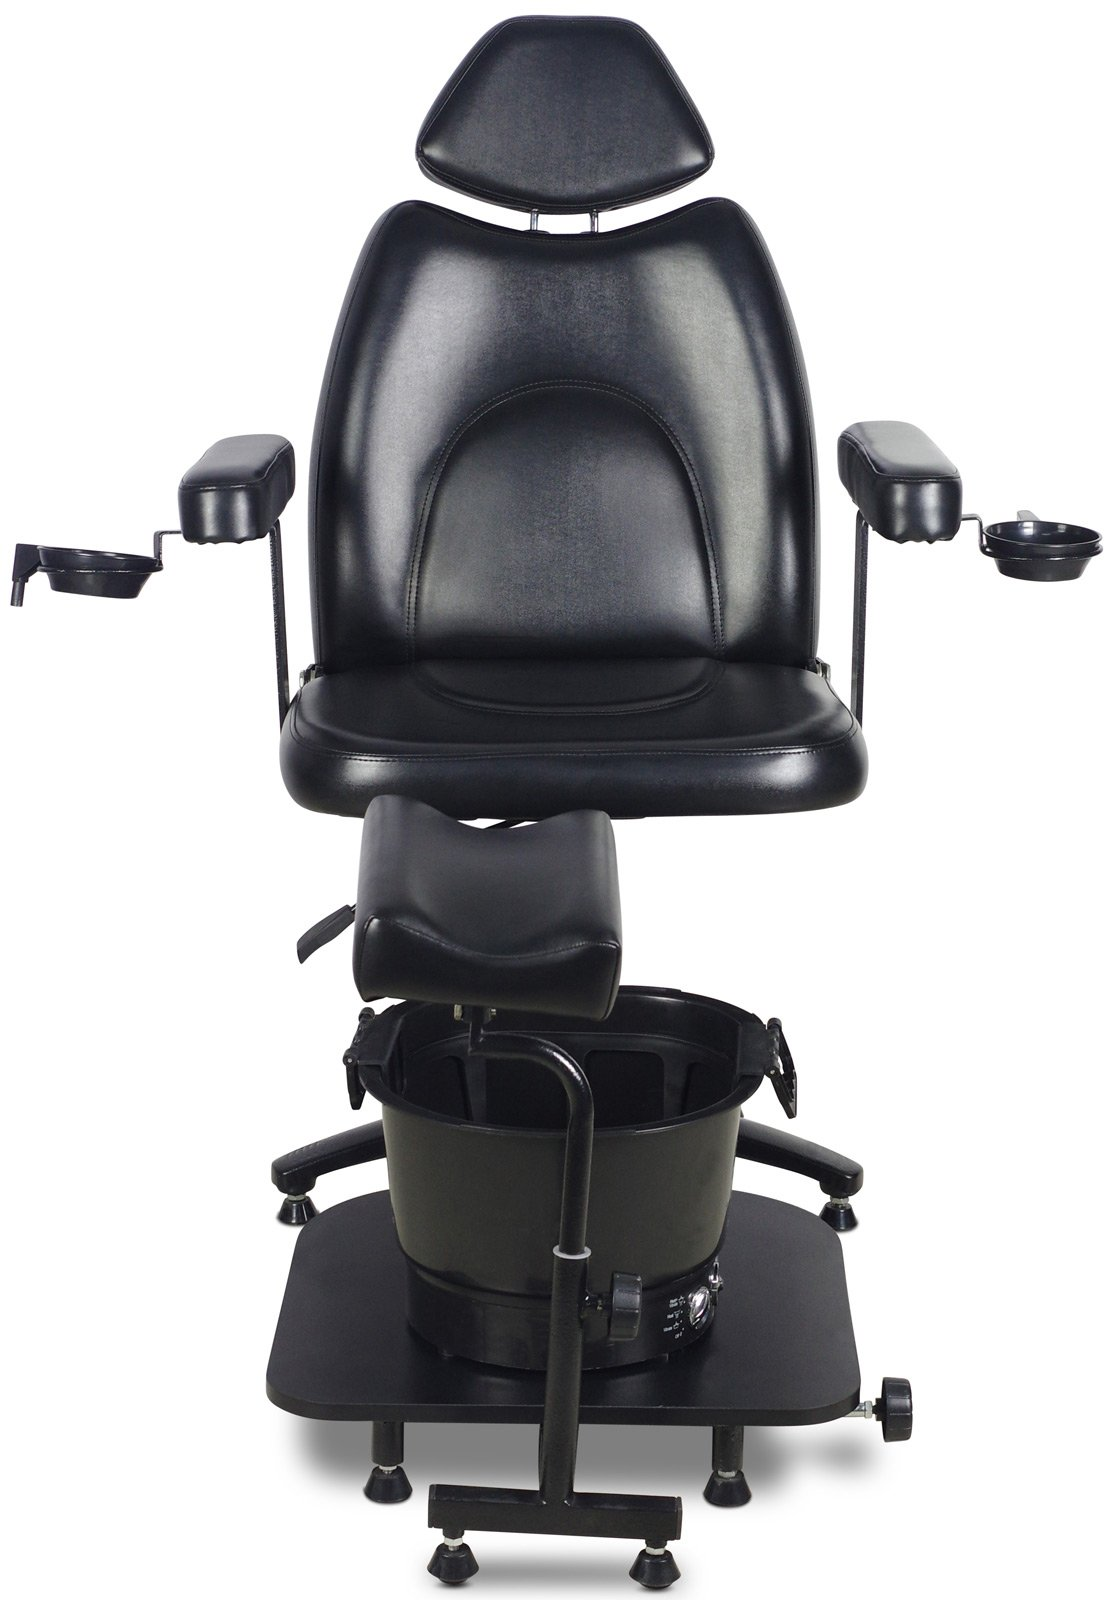 Icarus ''Zenith'' Black Pedicure Foot Spa Station Chair by Icarus (Image #8)